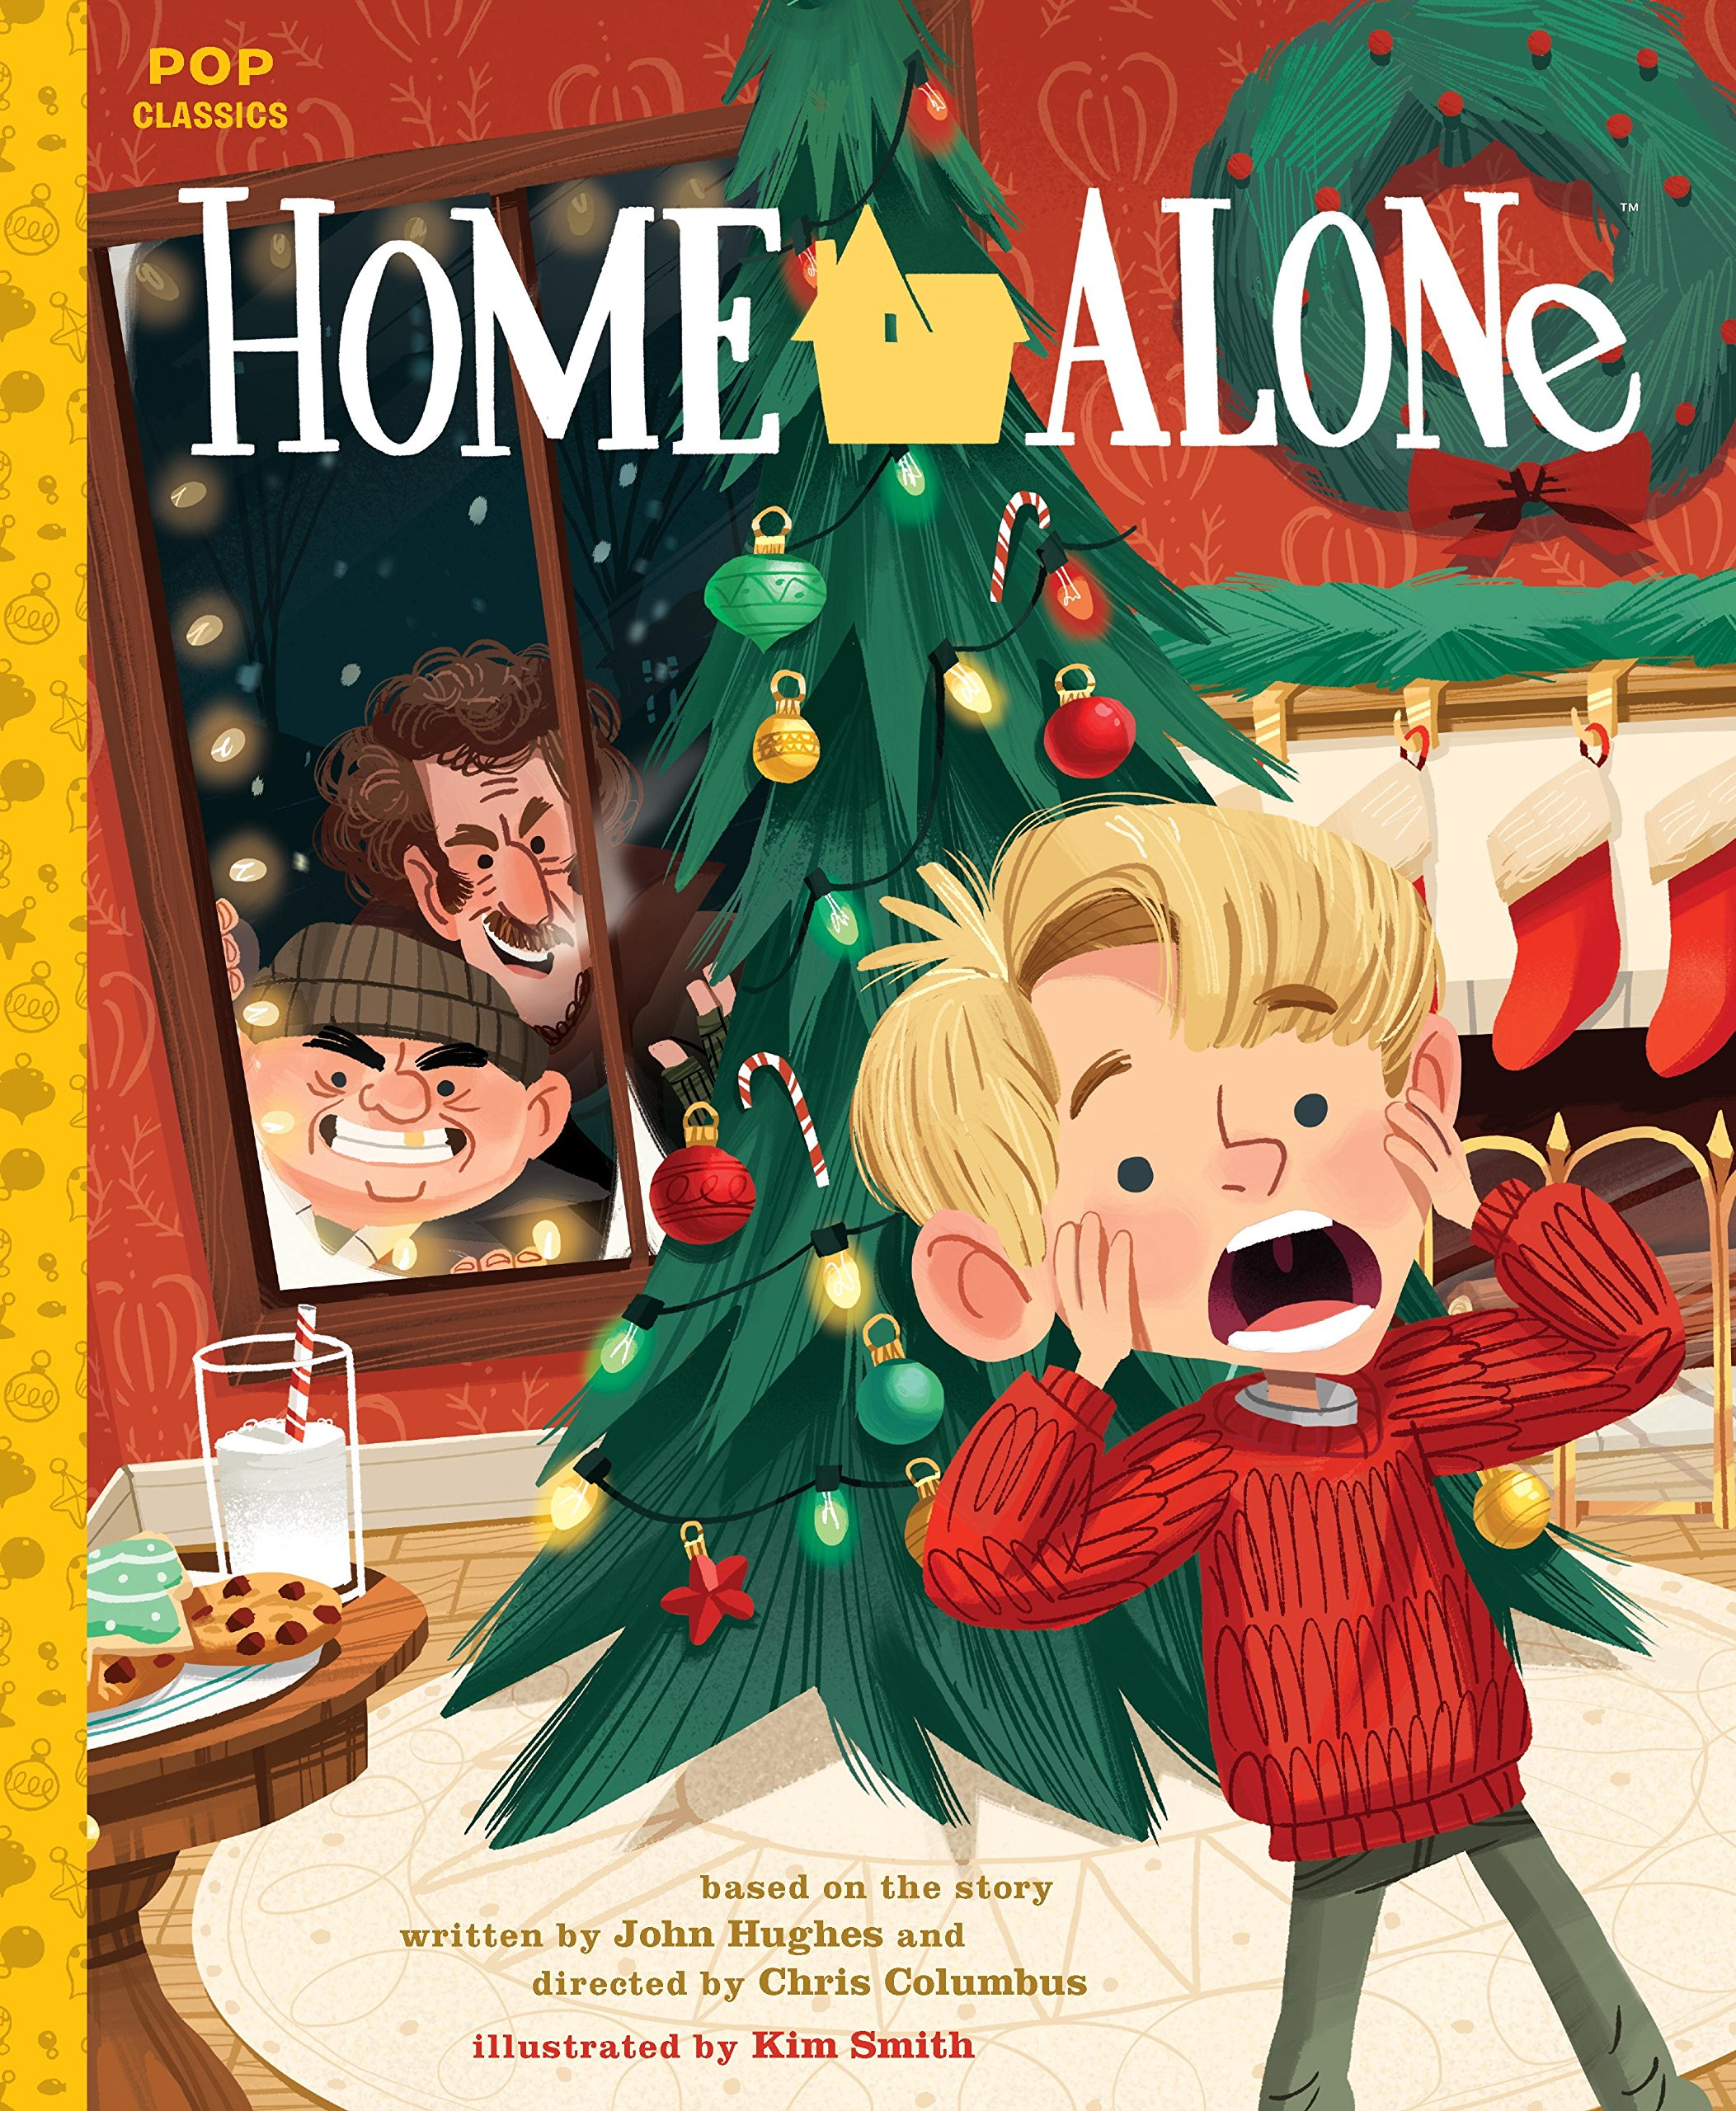 Home Alone: The Classic Illustrated Storybook (Pop Classics, Band 1)